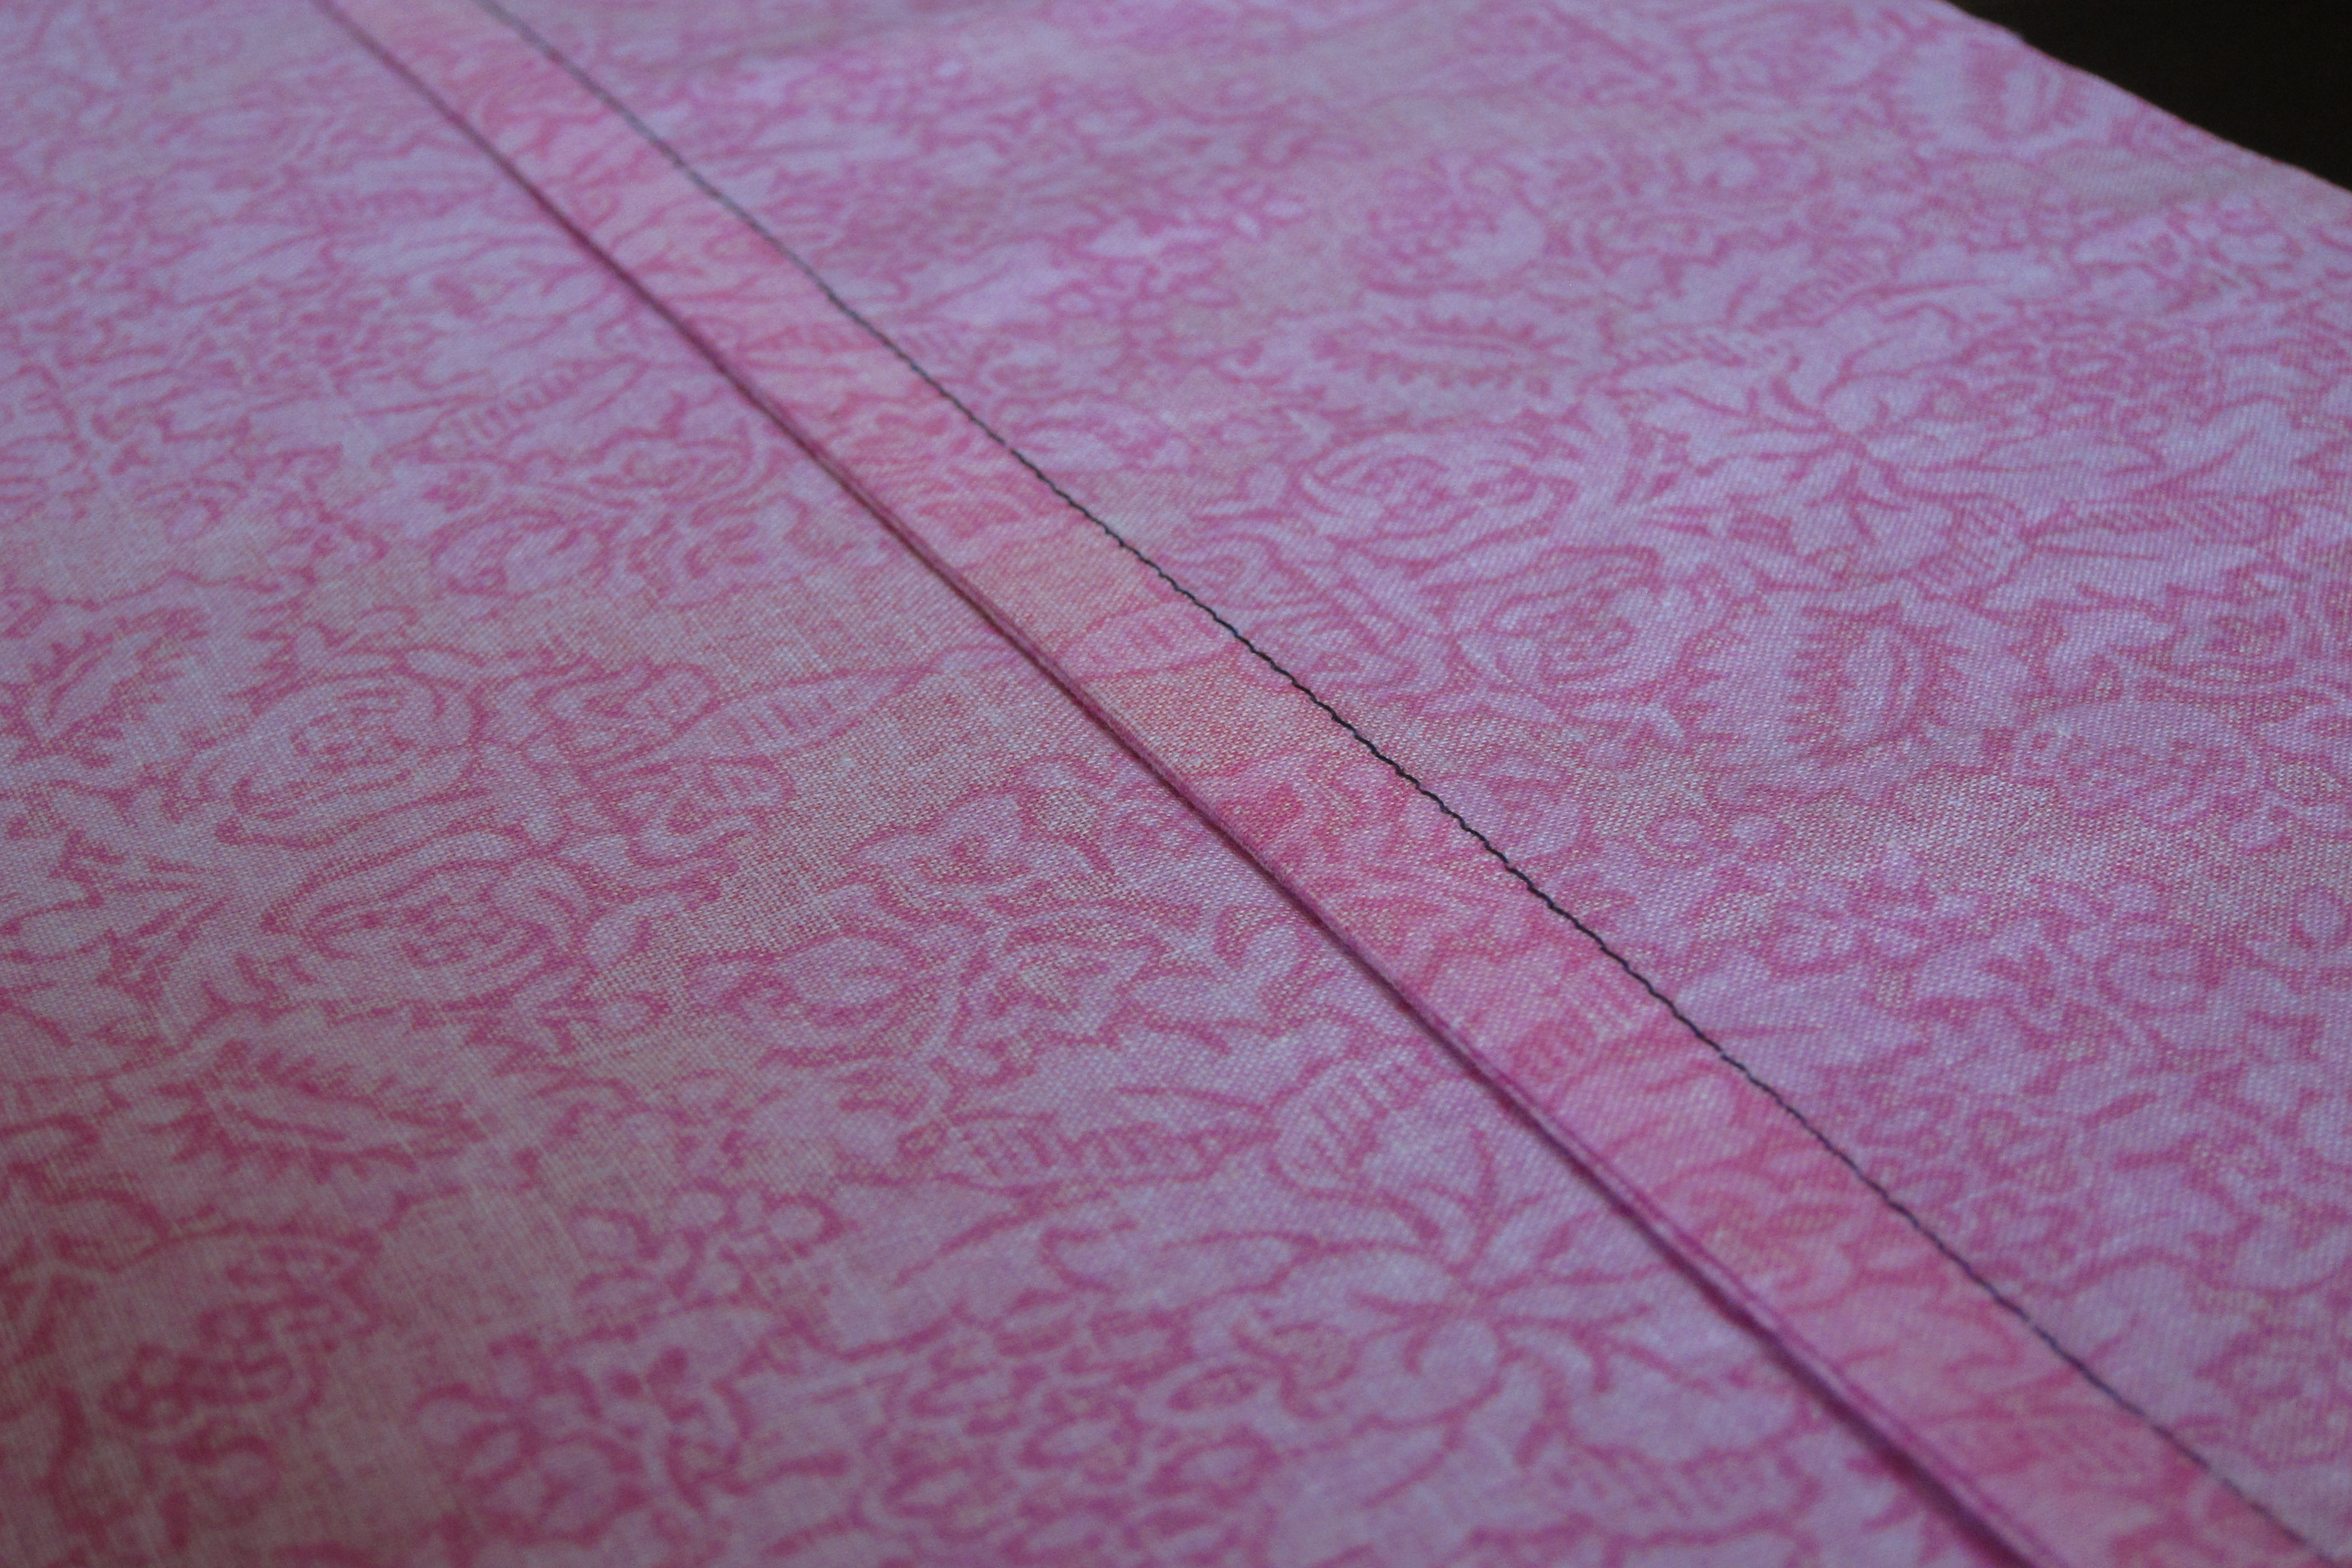 How to Sew a French Seam | LoveToKnow